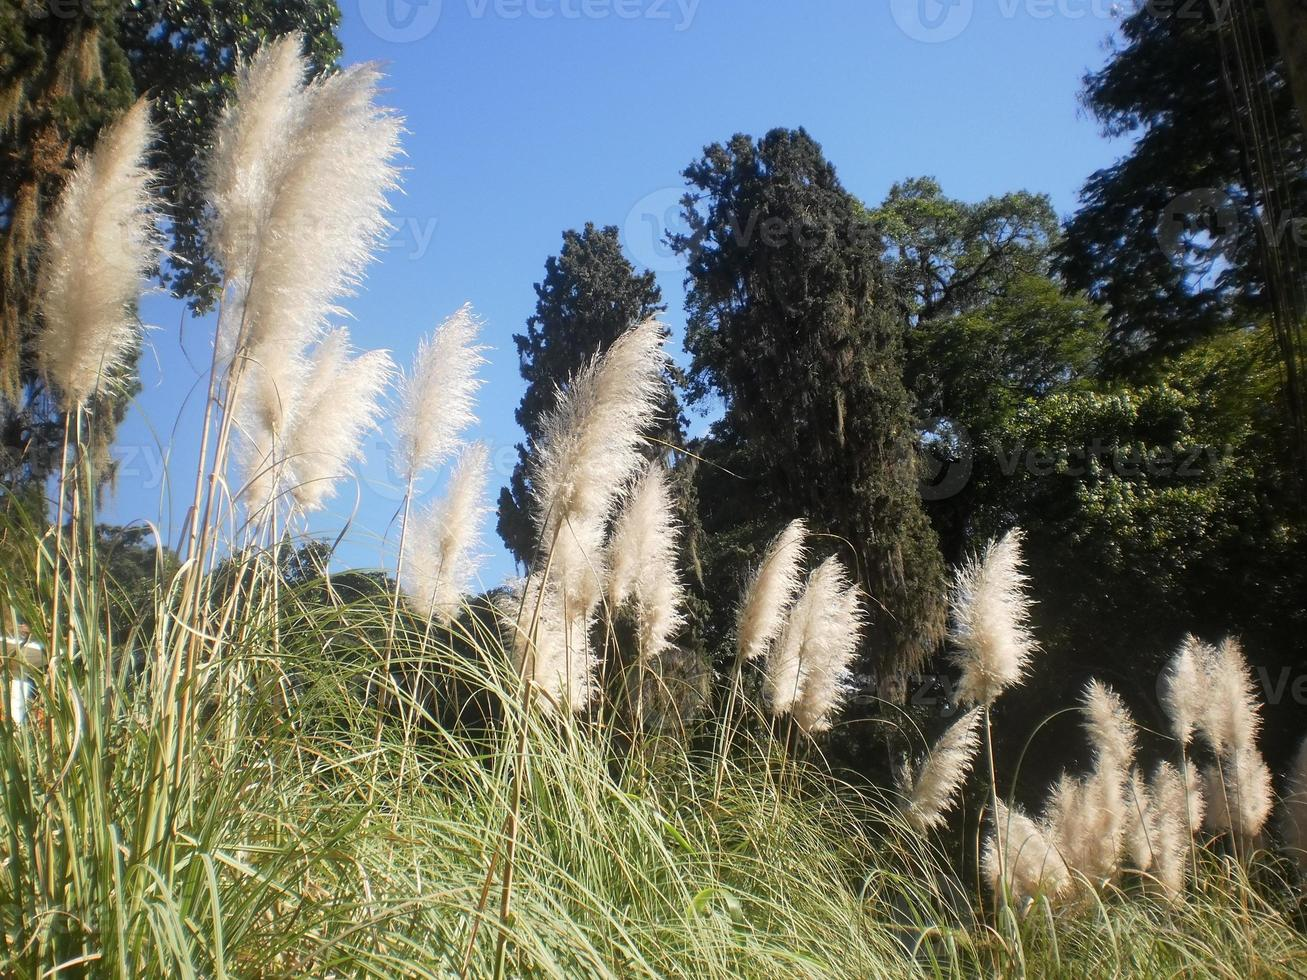 Flowers of the field of natural feathers photo